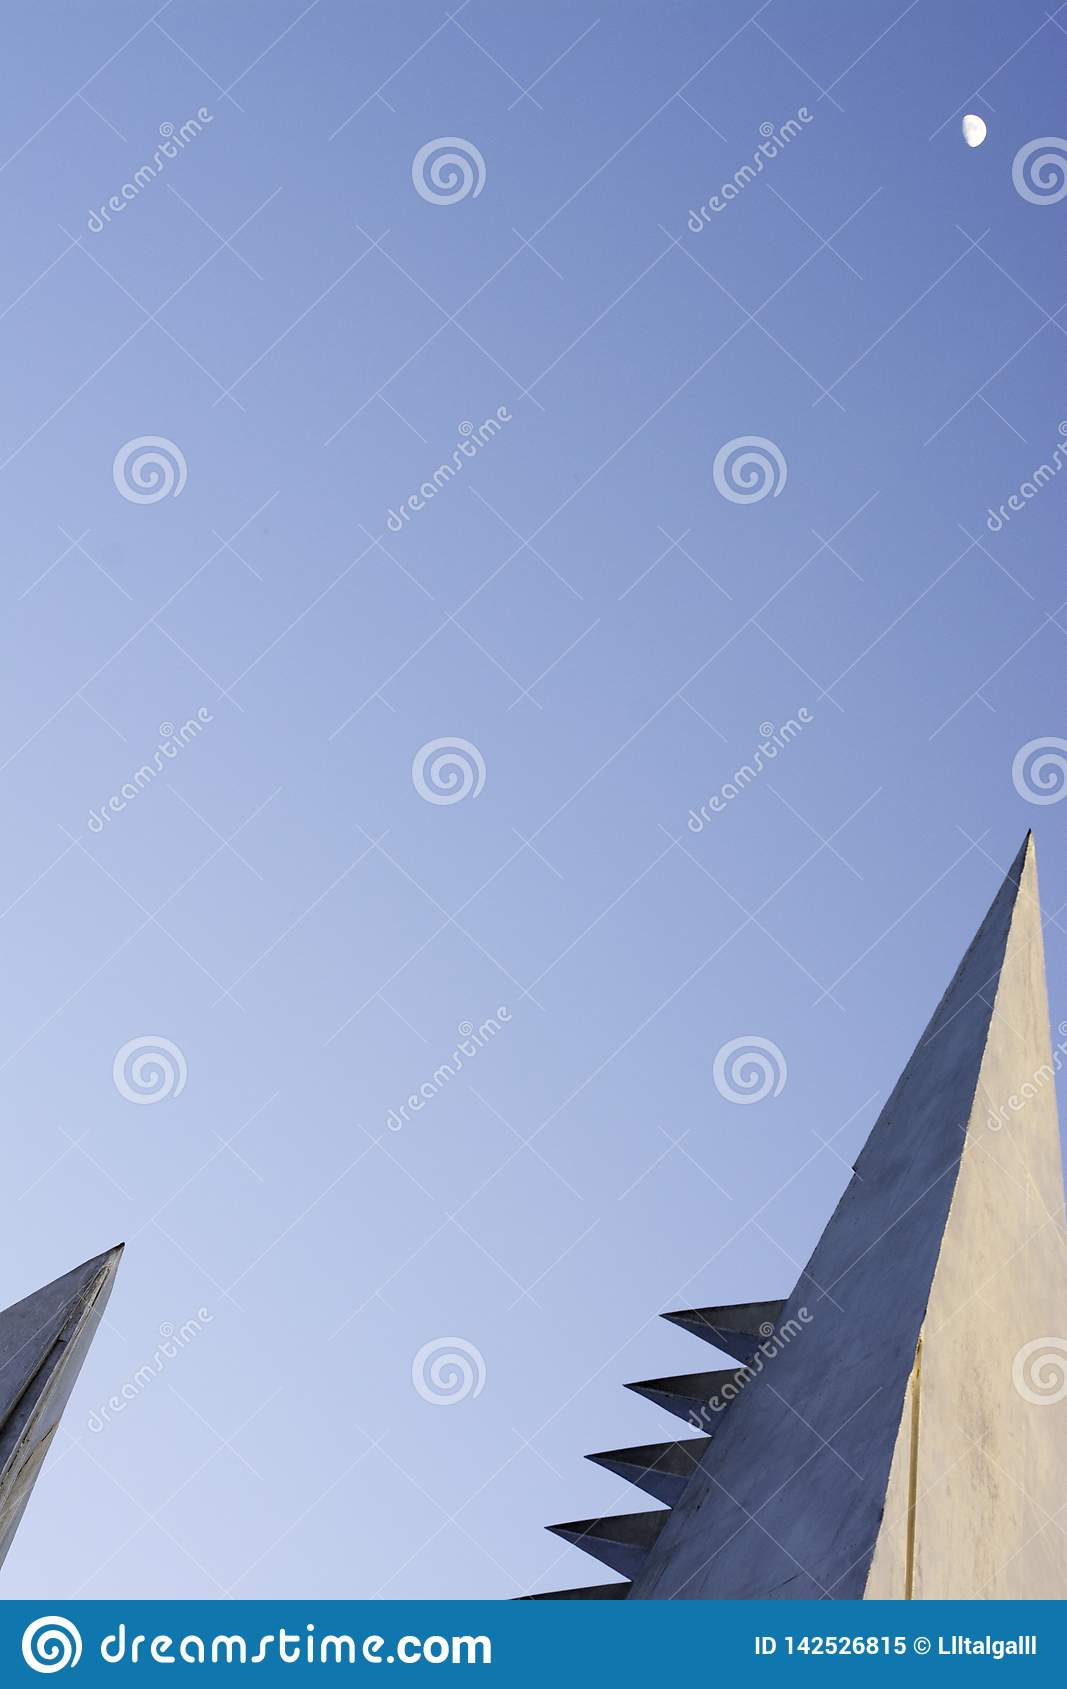 Blue sky with architectural elements.